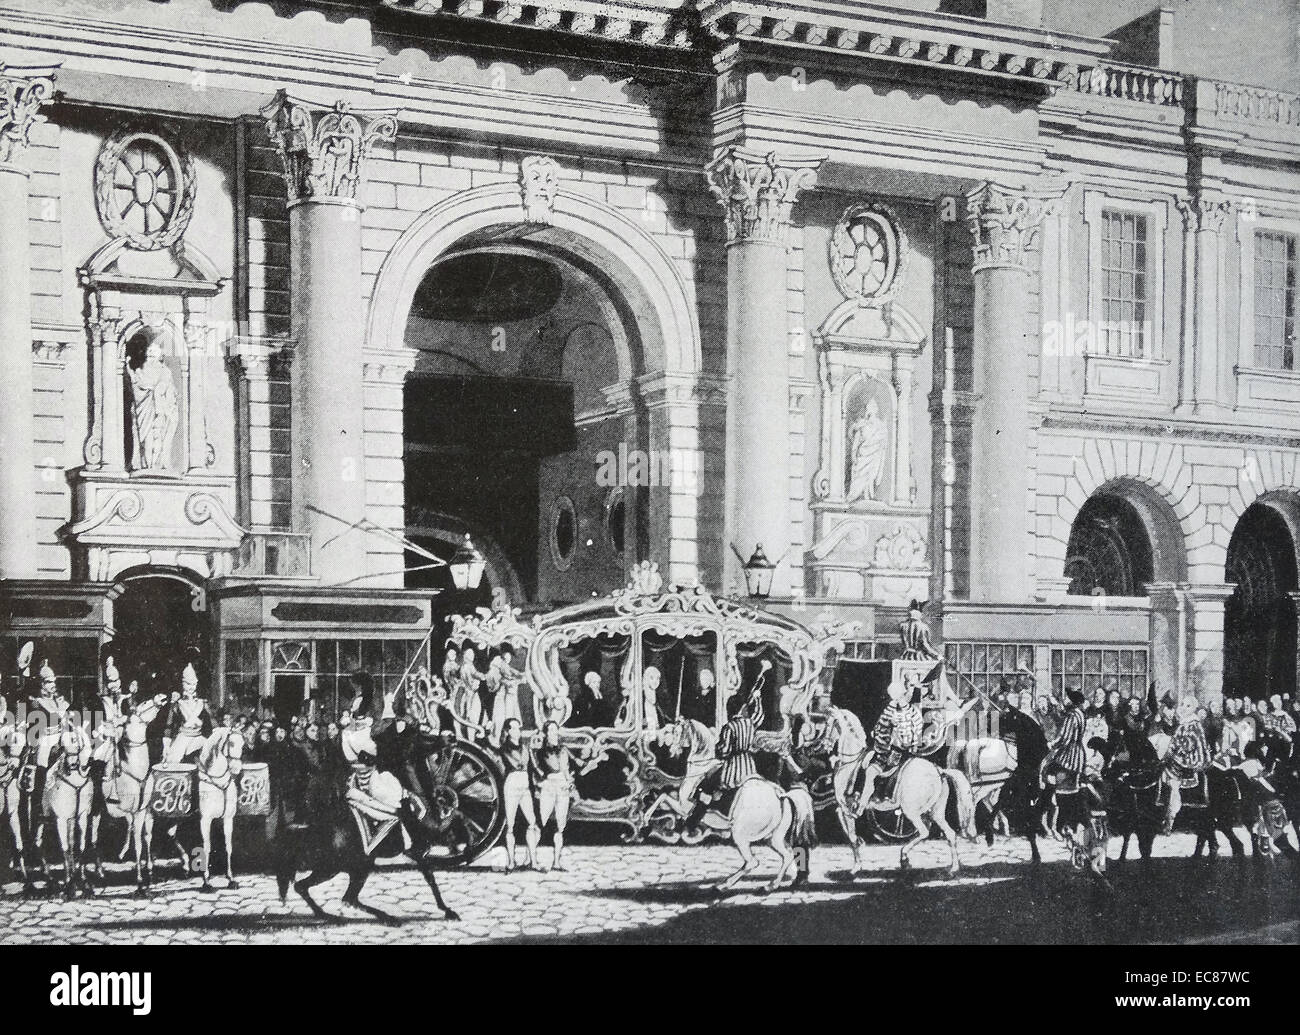 Photograph of the Proclamation of King George IV of Great Britain at the Royal Exchange, London. Dated 1820 Stock Photo